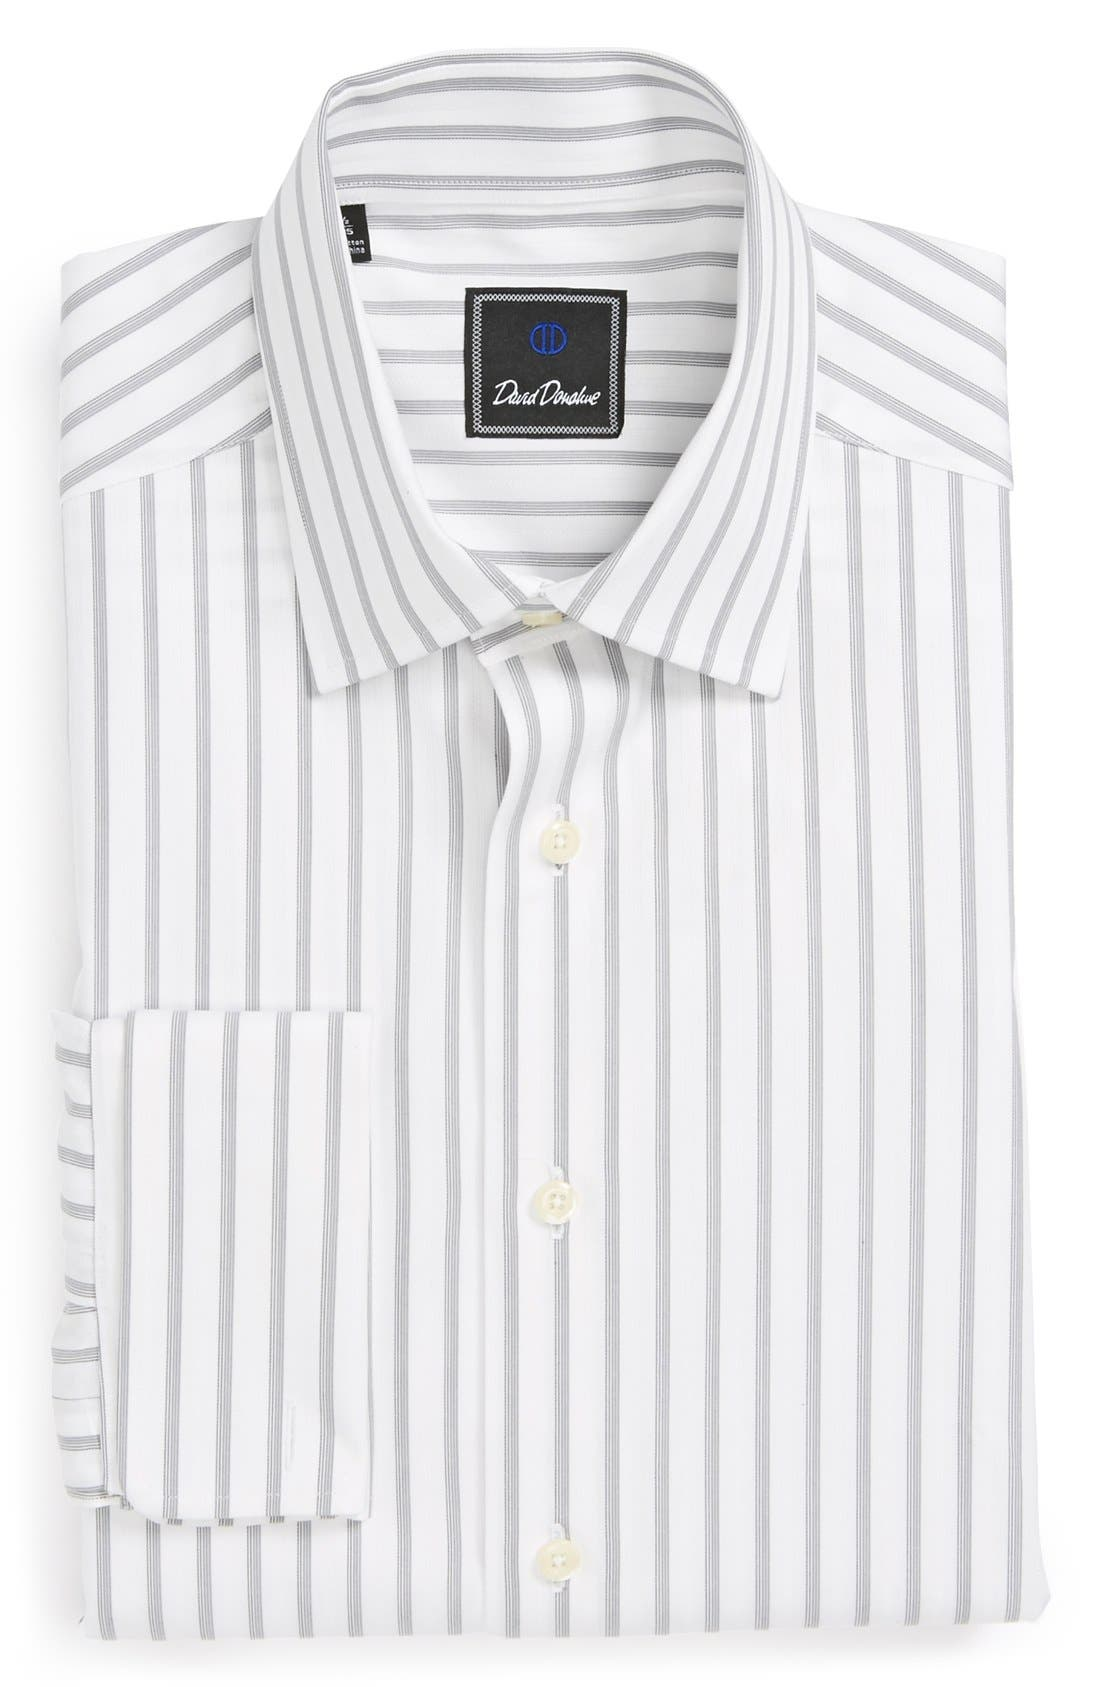 Main Image - David Donahue Regular Fit Stripe Dress Shirt